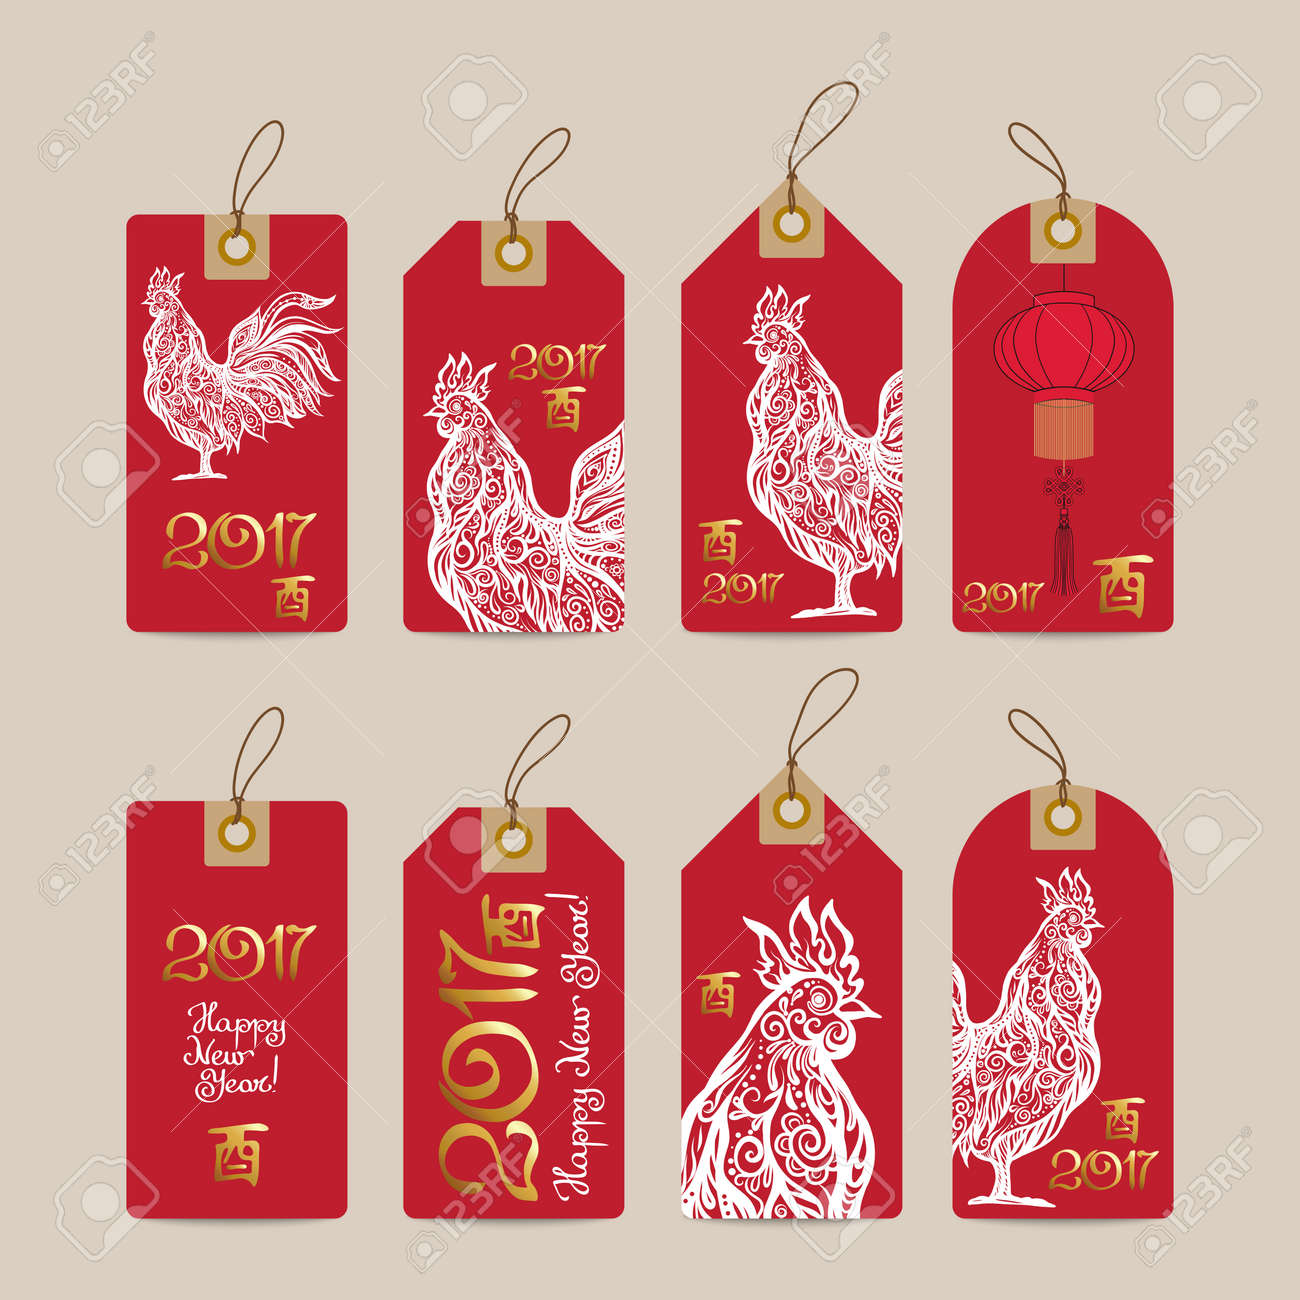 Chinese new years symbols image collections symbol and sign ideas decorative rooster chinese new year symbol of 2017 new year chinese new year symbol of 2017 buycottarizona Gallery